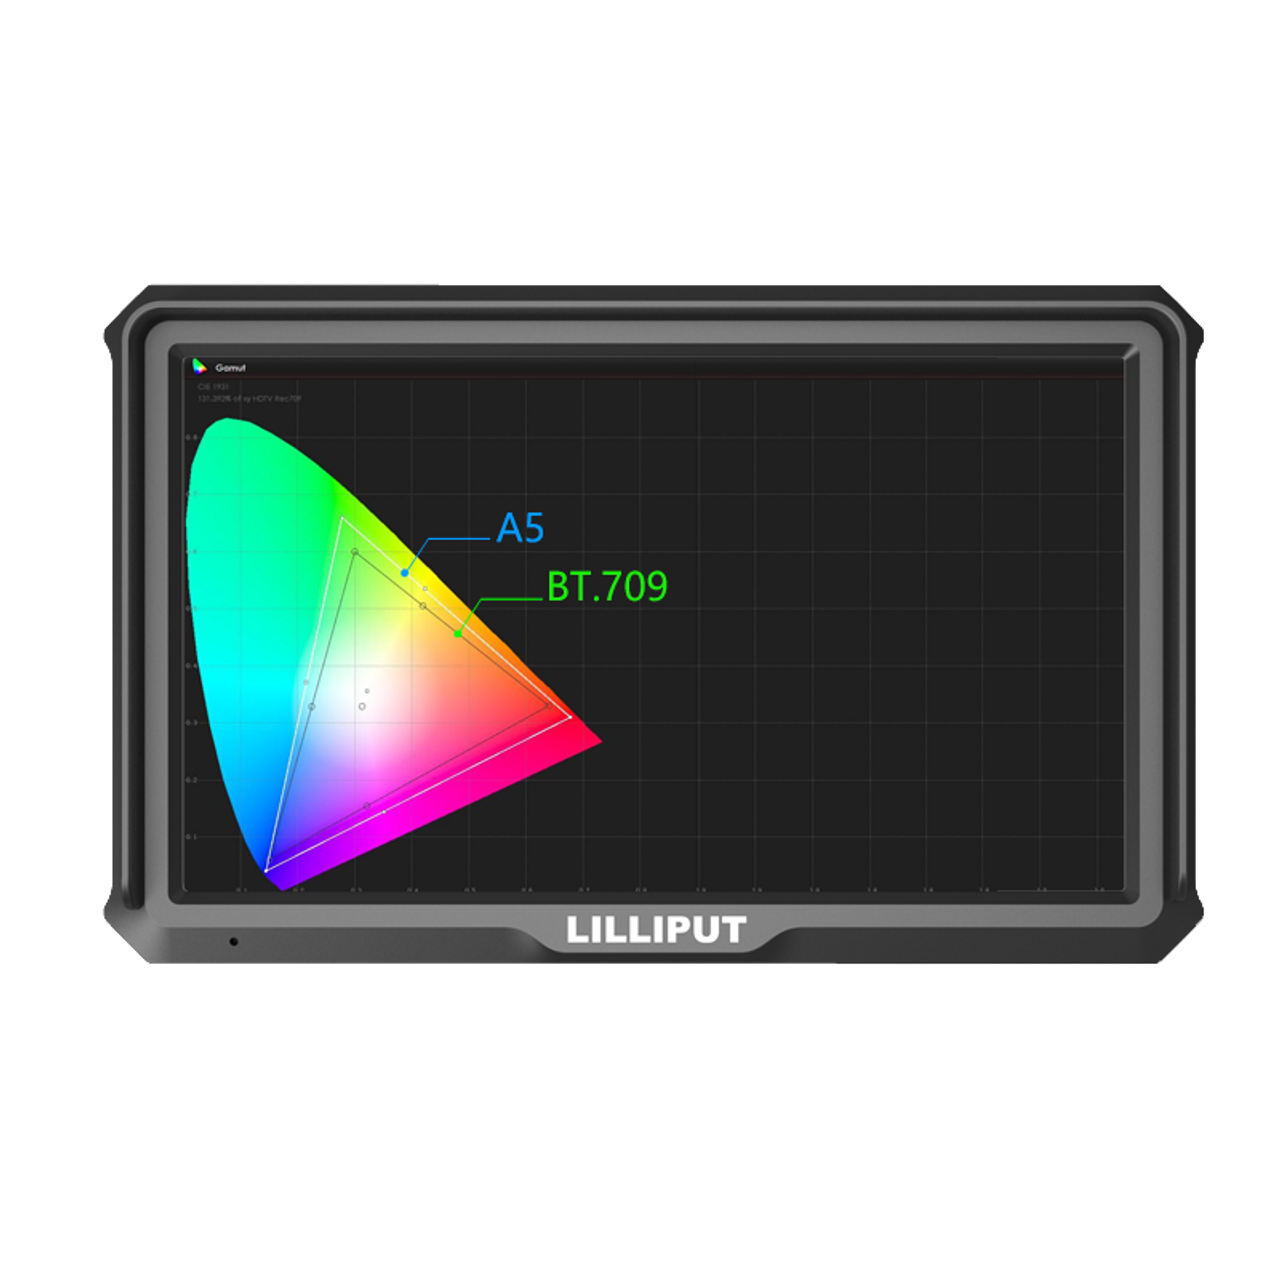 A5 5 Inch FHD HDMI Light-Weight Monitor